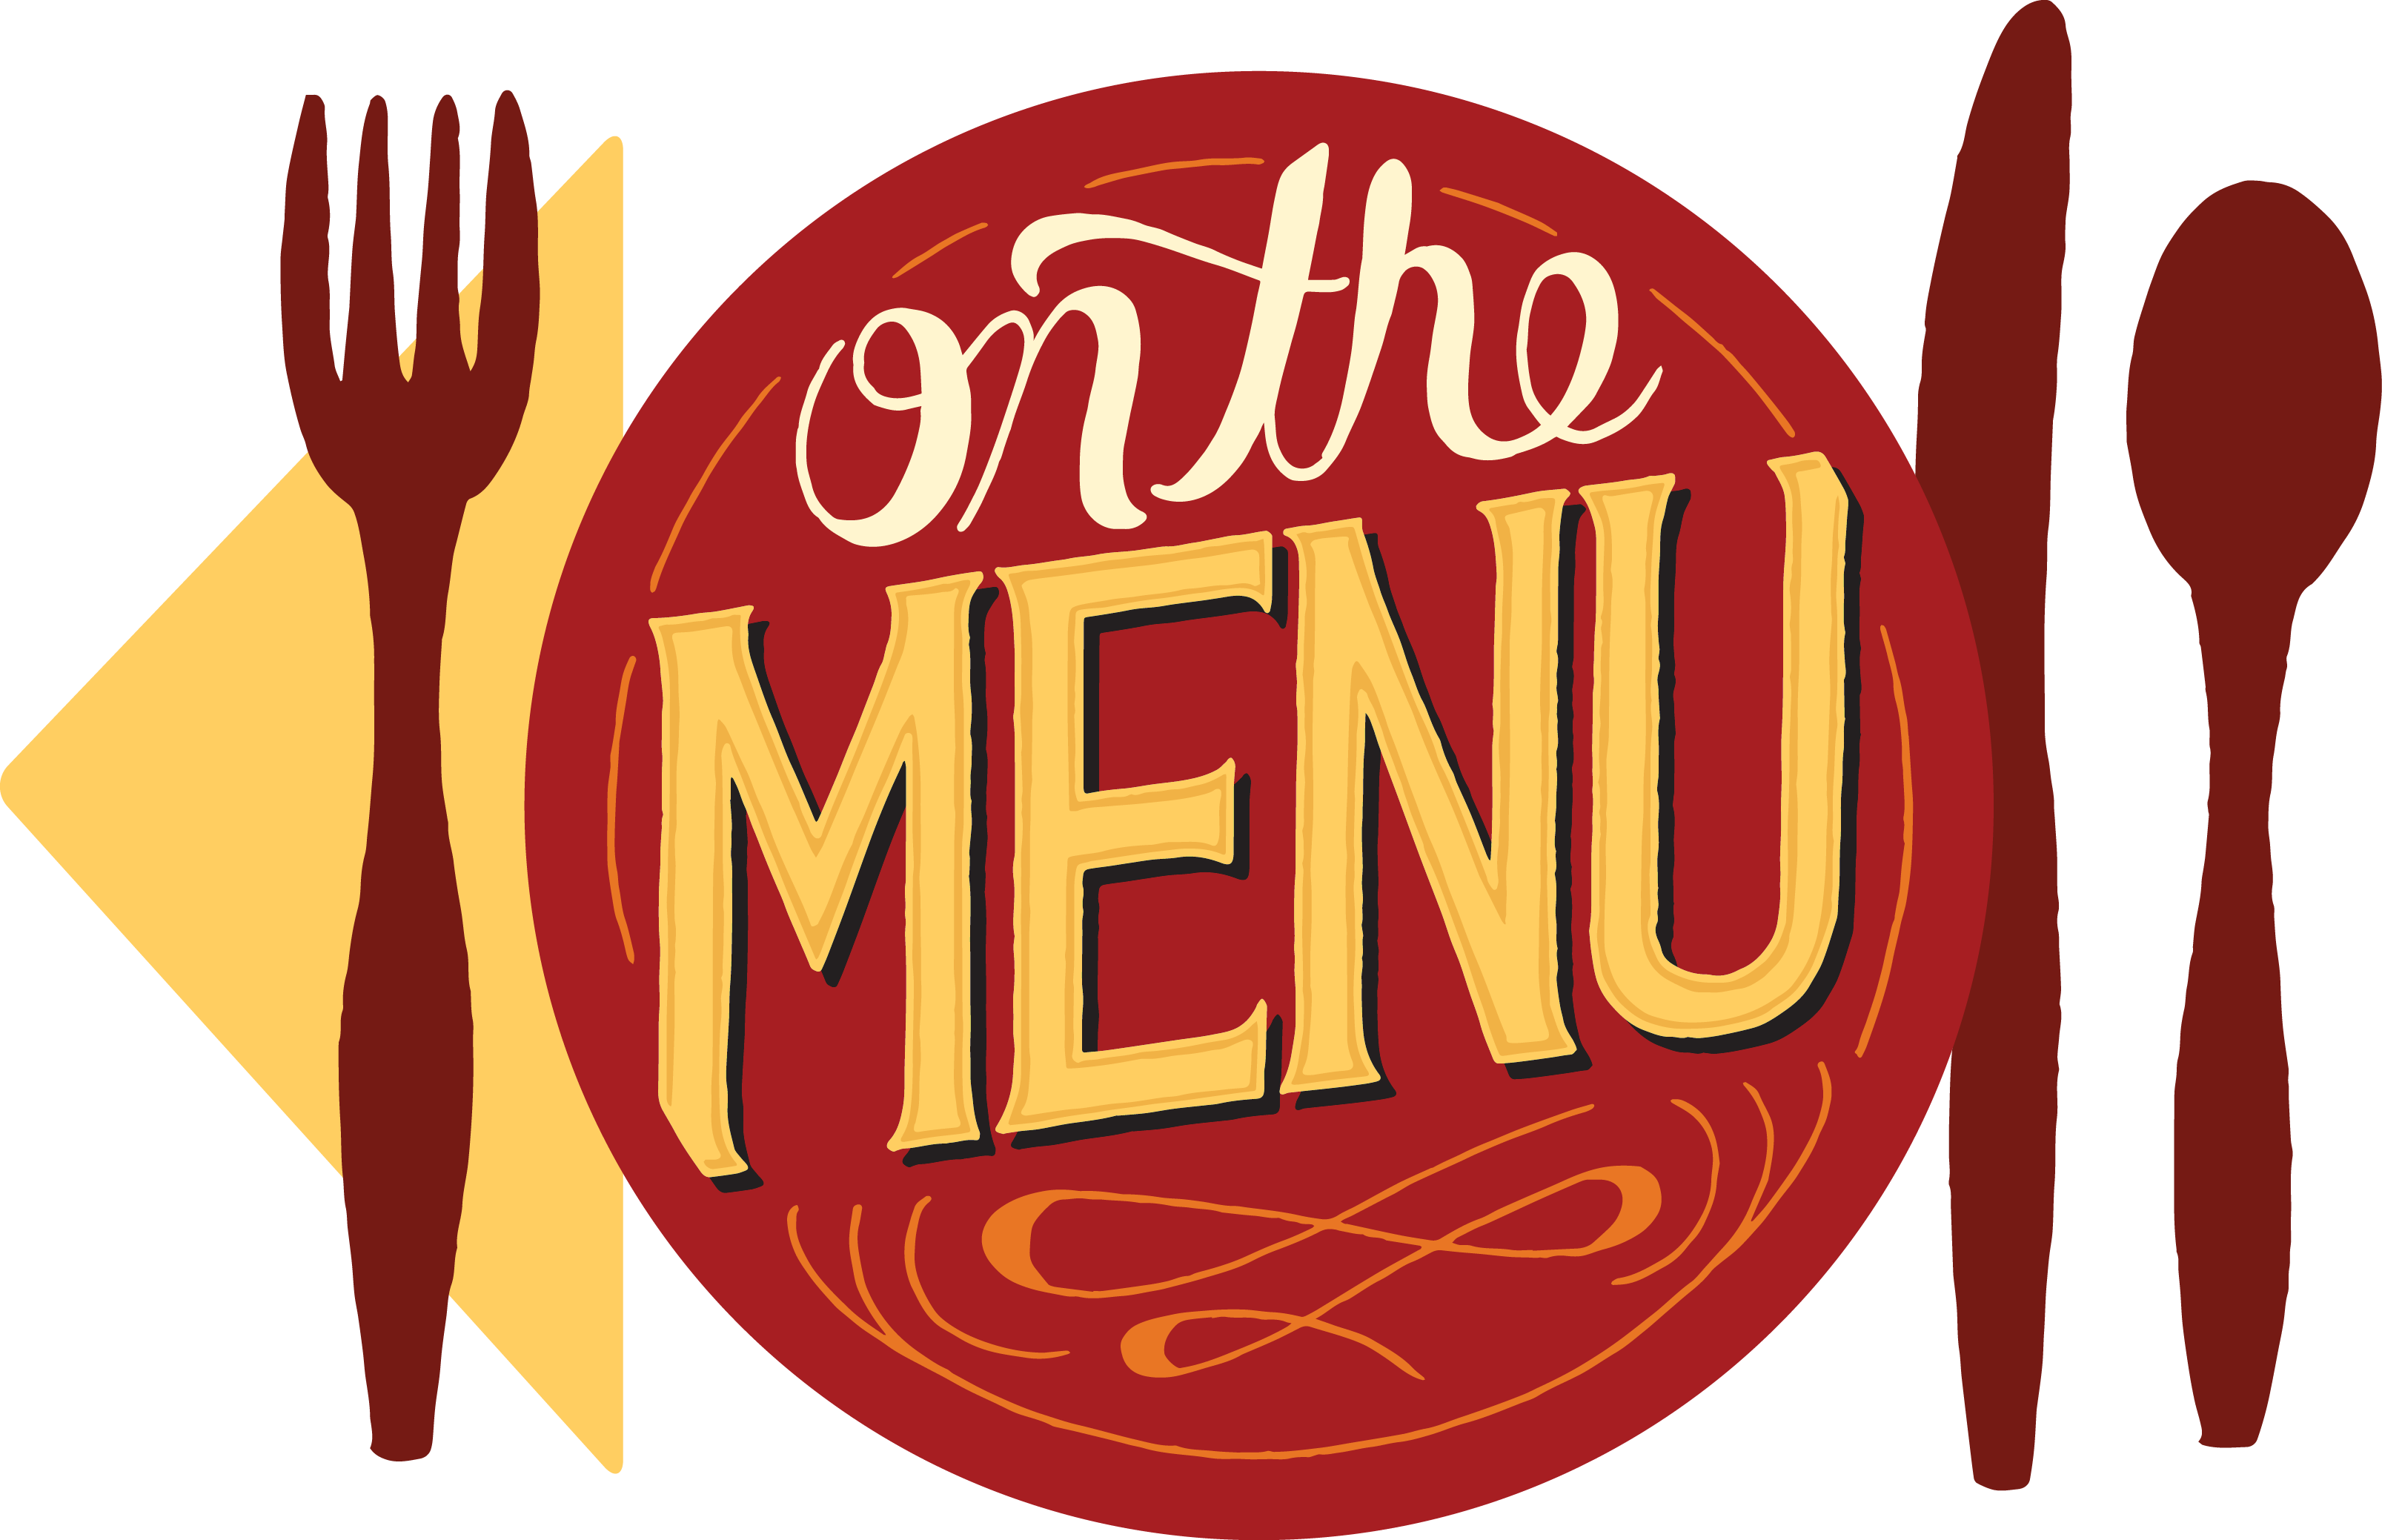 Menu PNG Images Transparent Free Download.